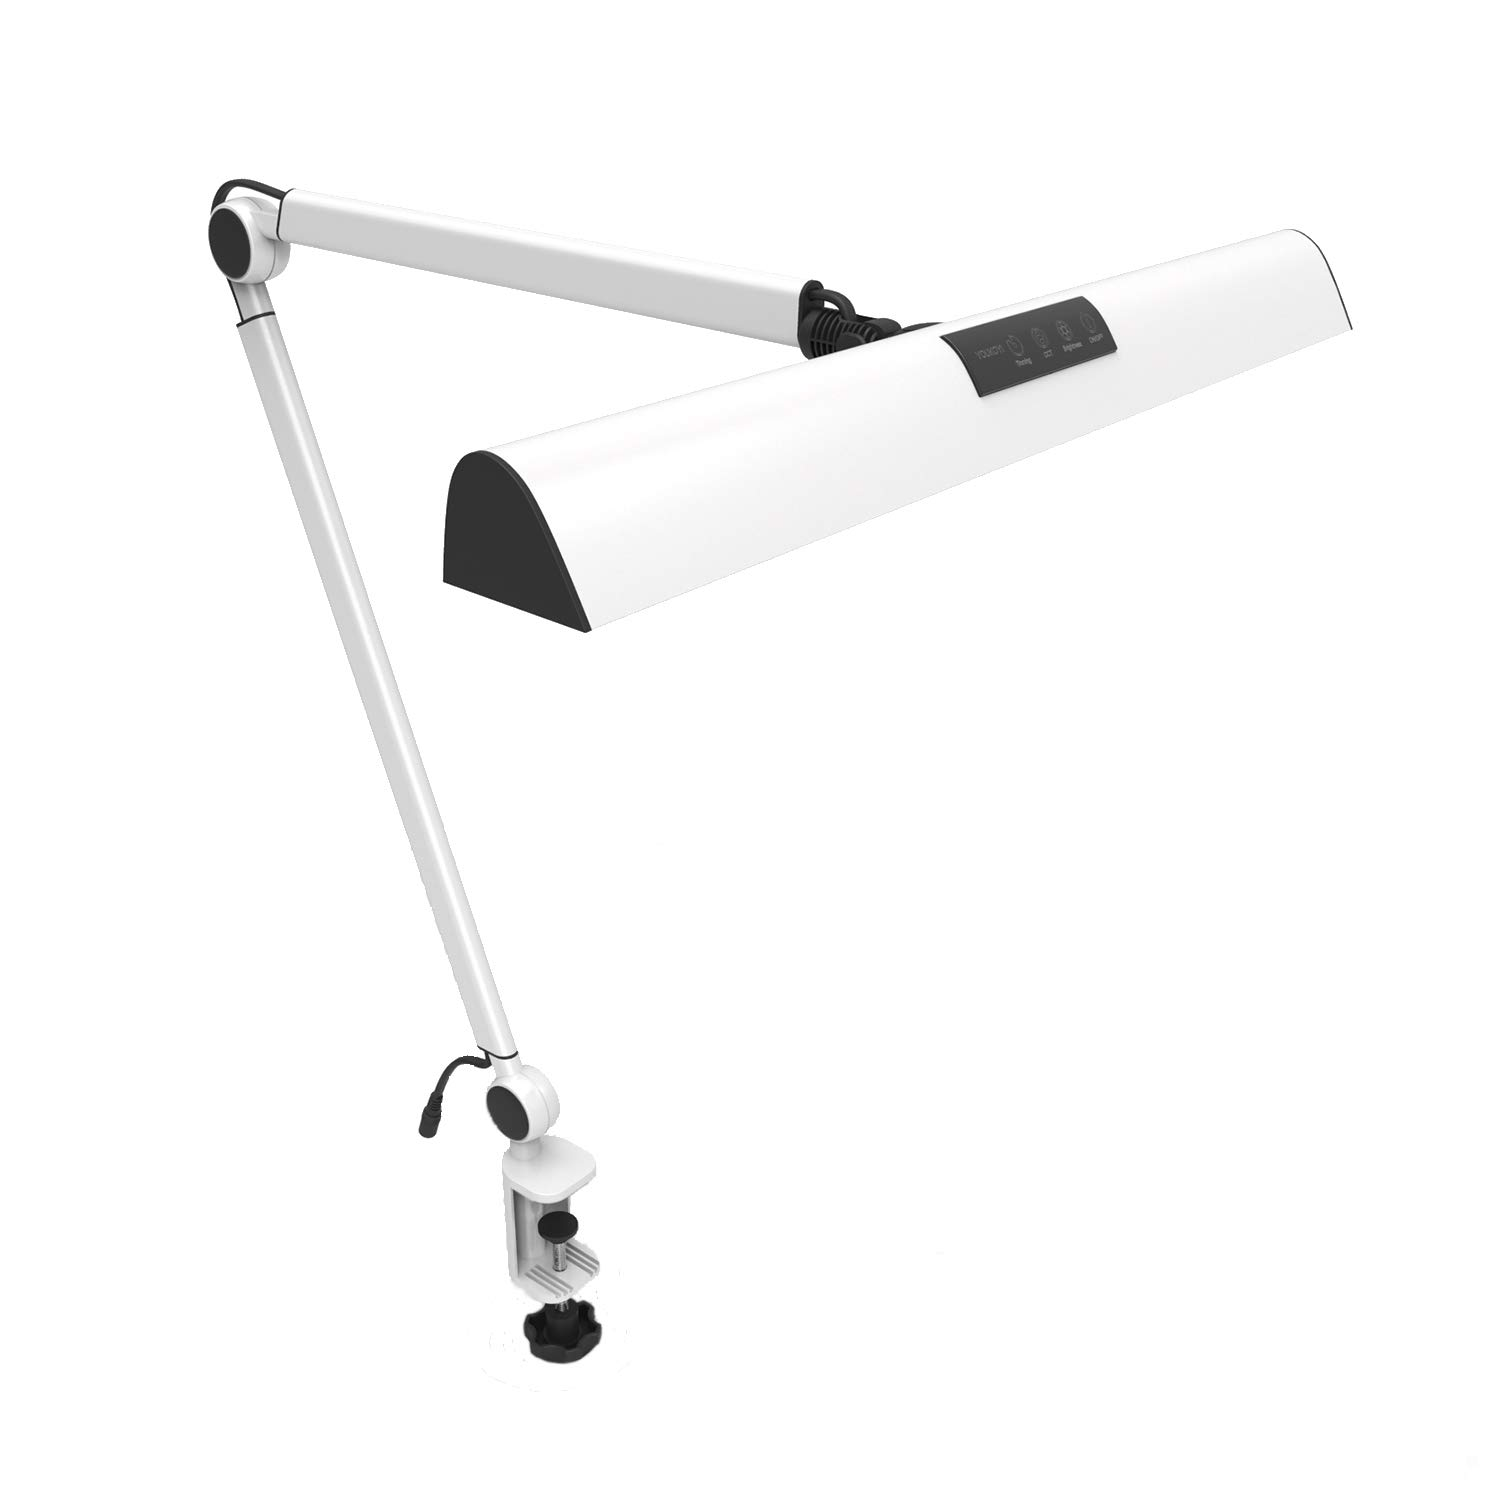 YOUKOYI A509 LED Swing Arm Architect Desk Lamp Clamp, Drafting Table Lamp for Reading Working 2 Lighting Modes, 4-level Dimmable, Eye Caring -Silver